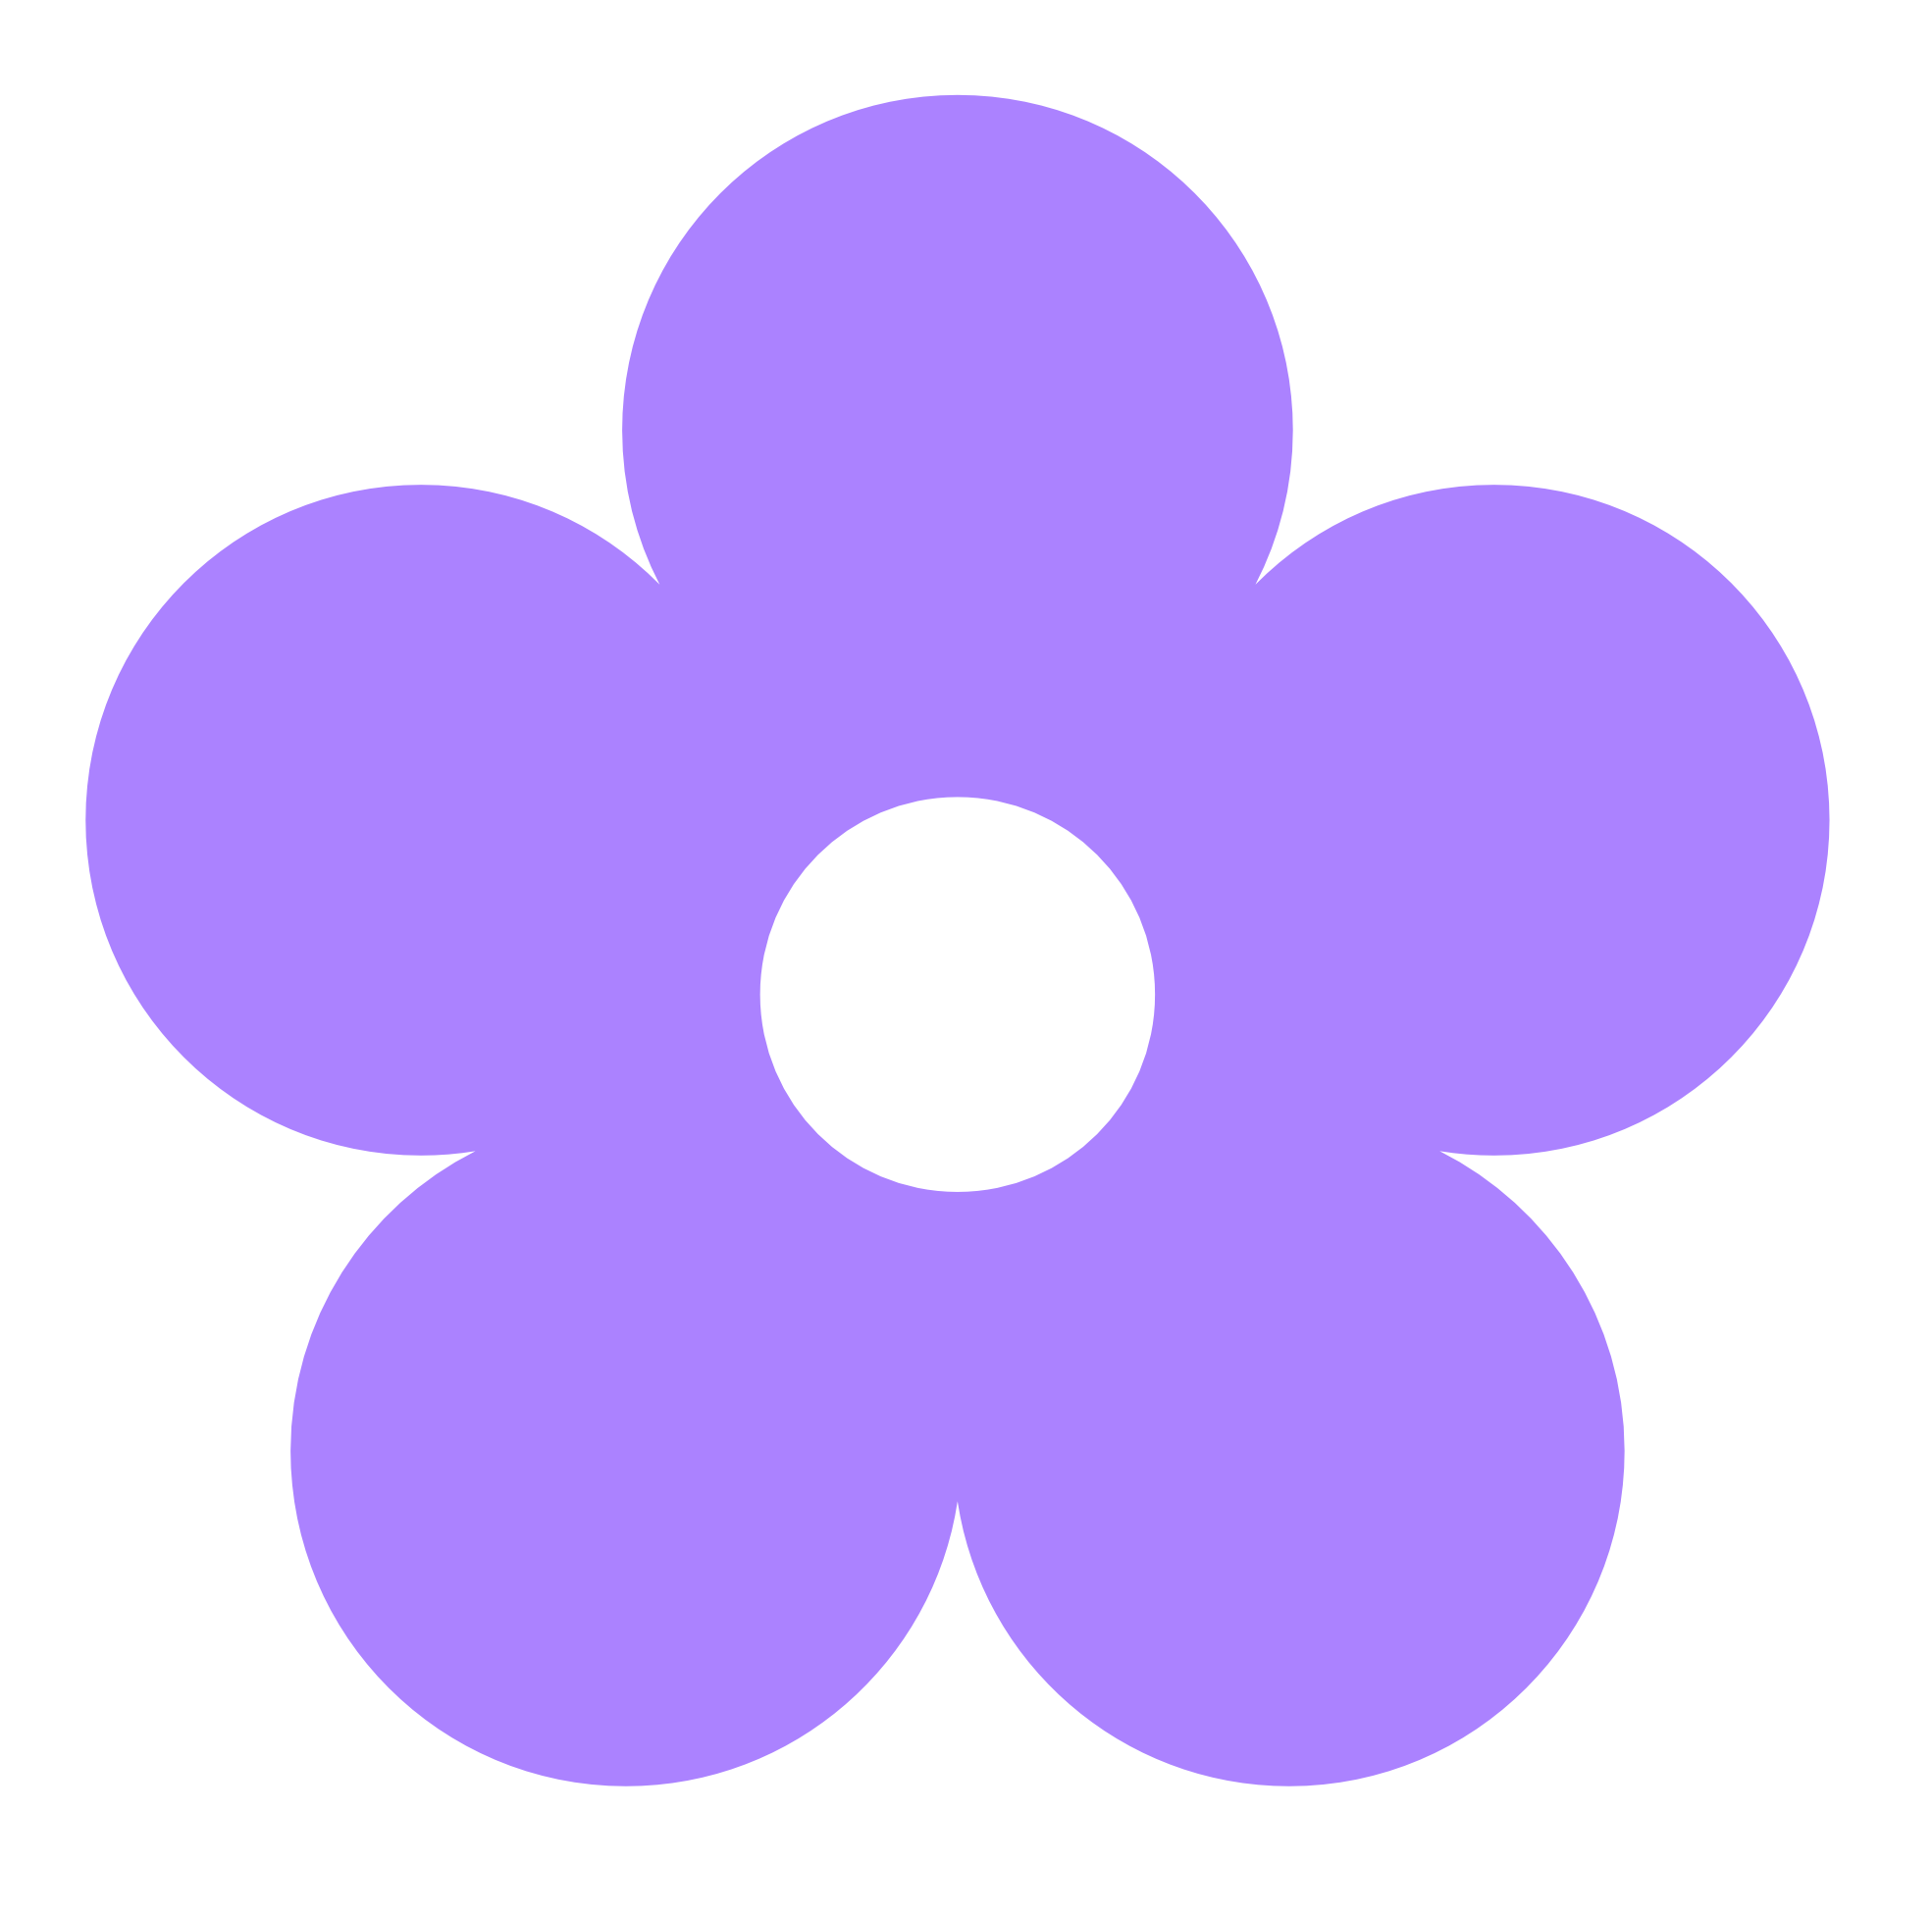 Purple flower border clipart free image transparent stock Flowers purple flower clip art free clipart images - Clipartix image transparent stock